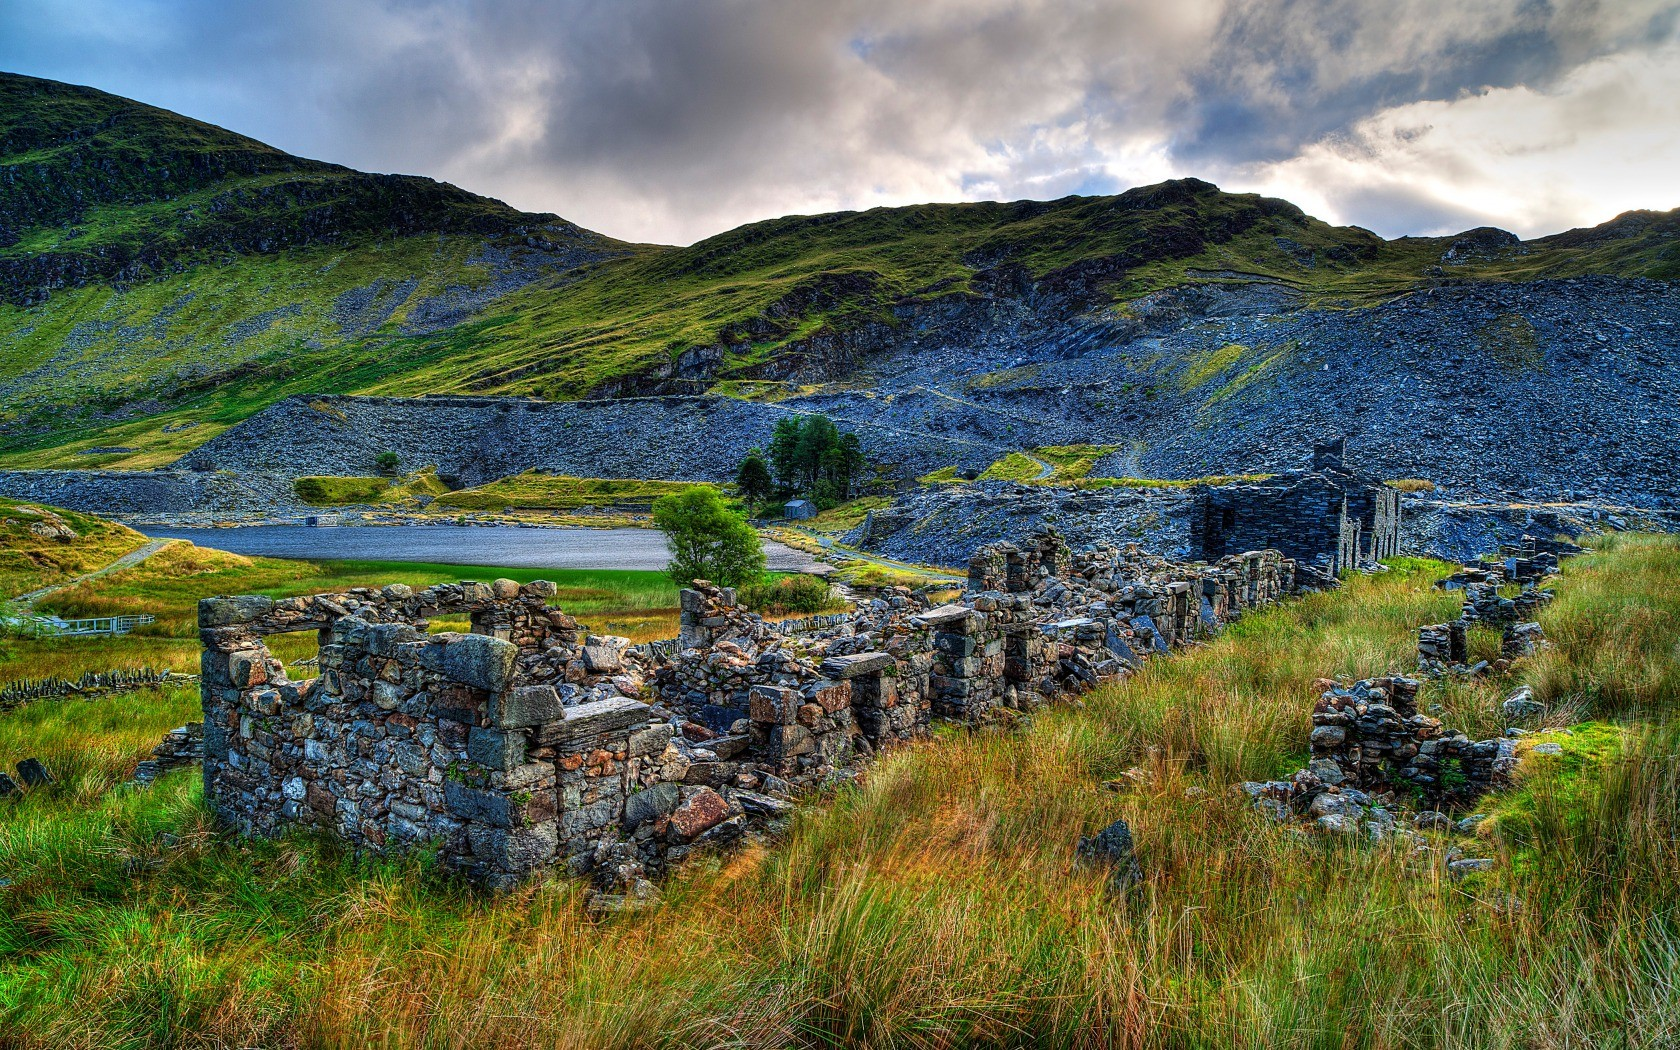 General 1680x1050 nature landscape clouds hills Wales UK castle ruin rock trees mountains grass house lake bricks HDR